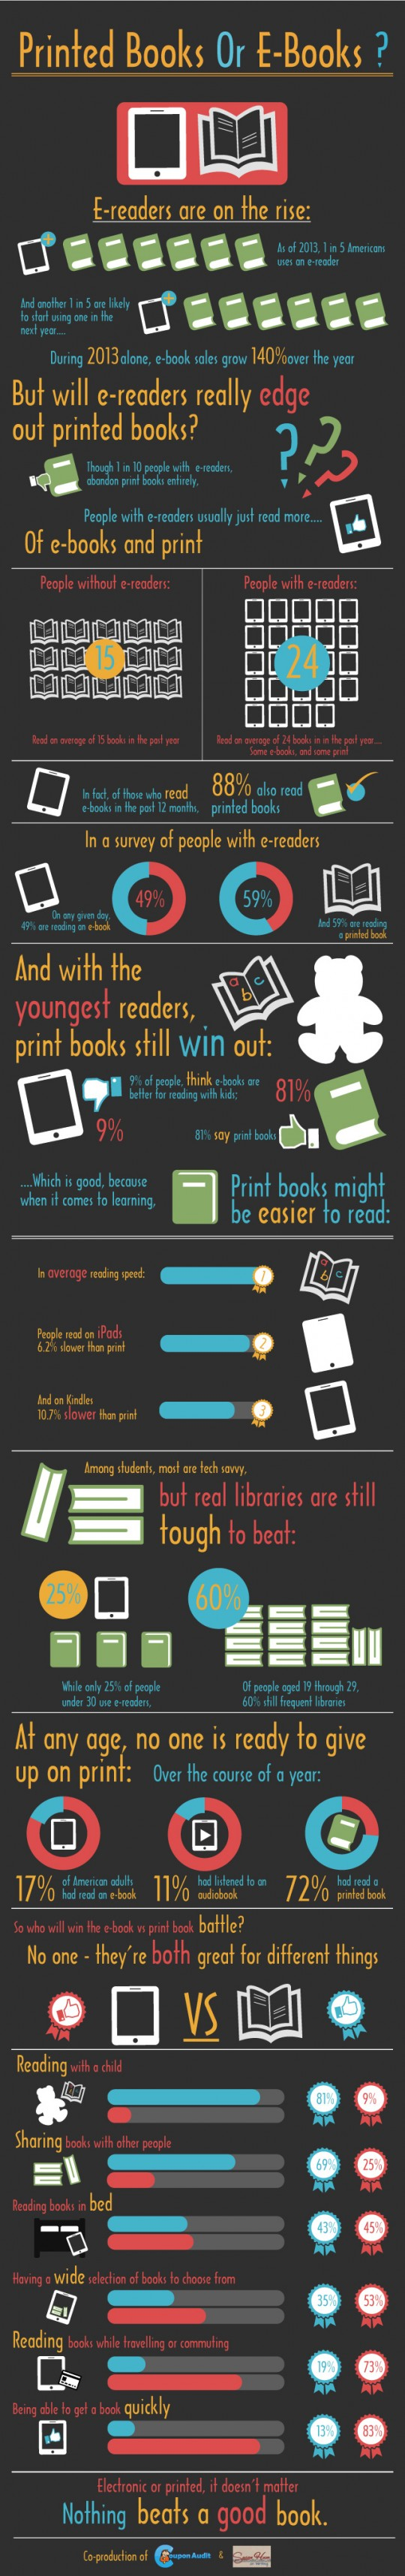 With-or-without-ereaders-540x3433